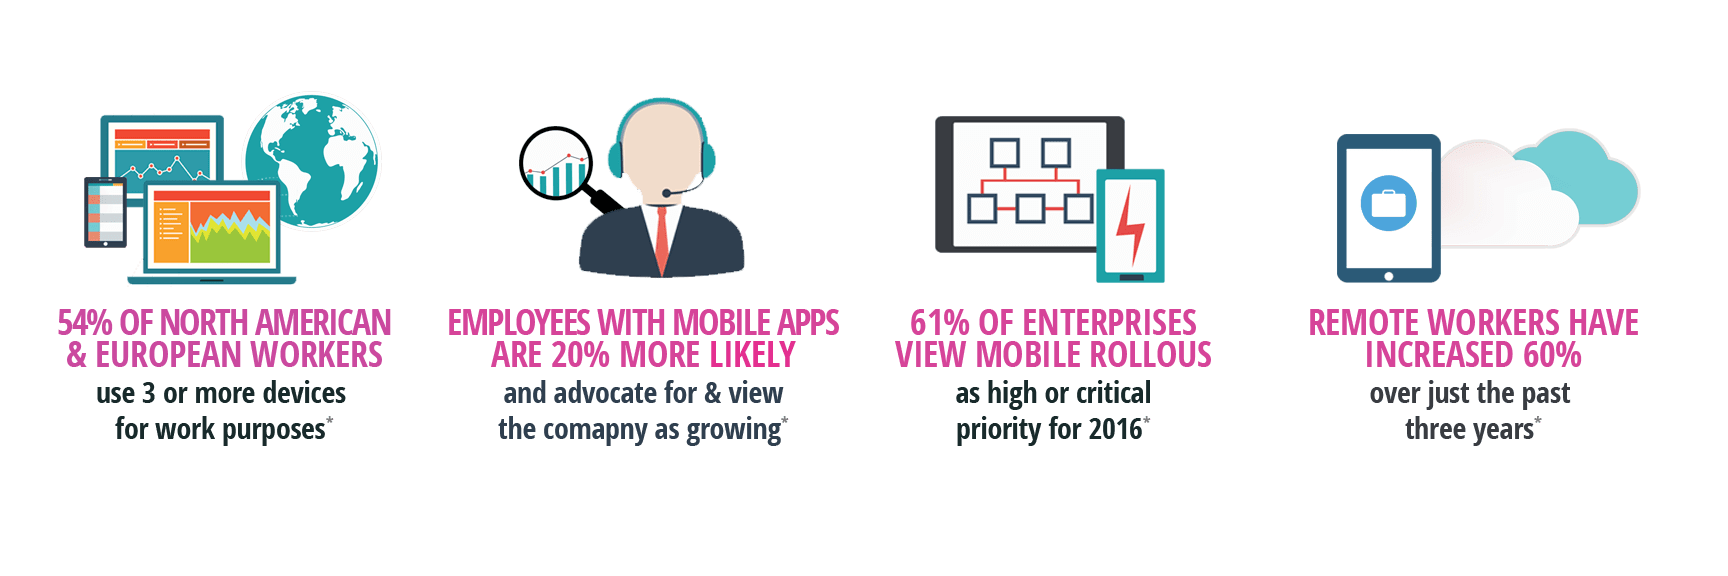 the case for mobile deployments